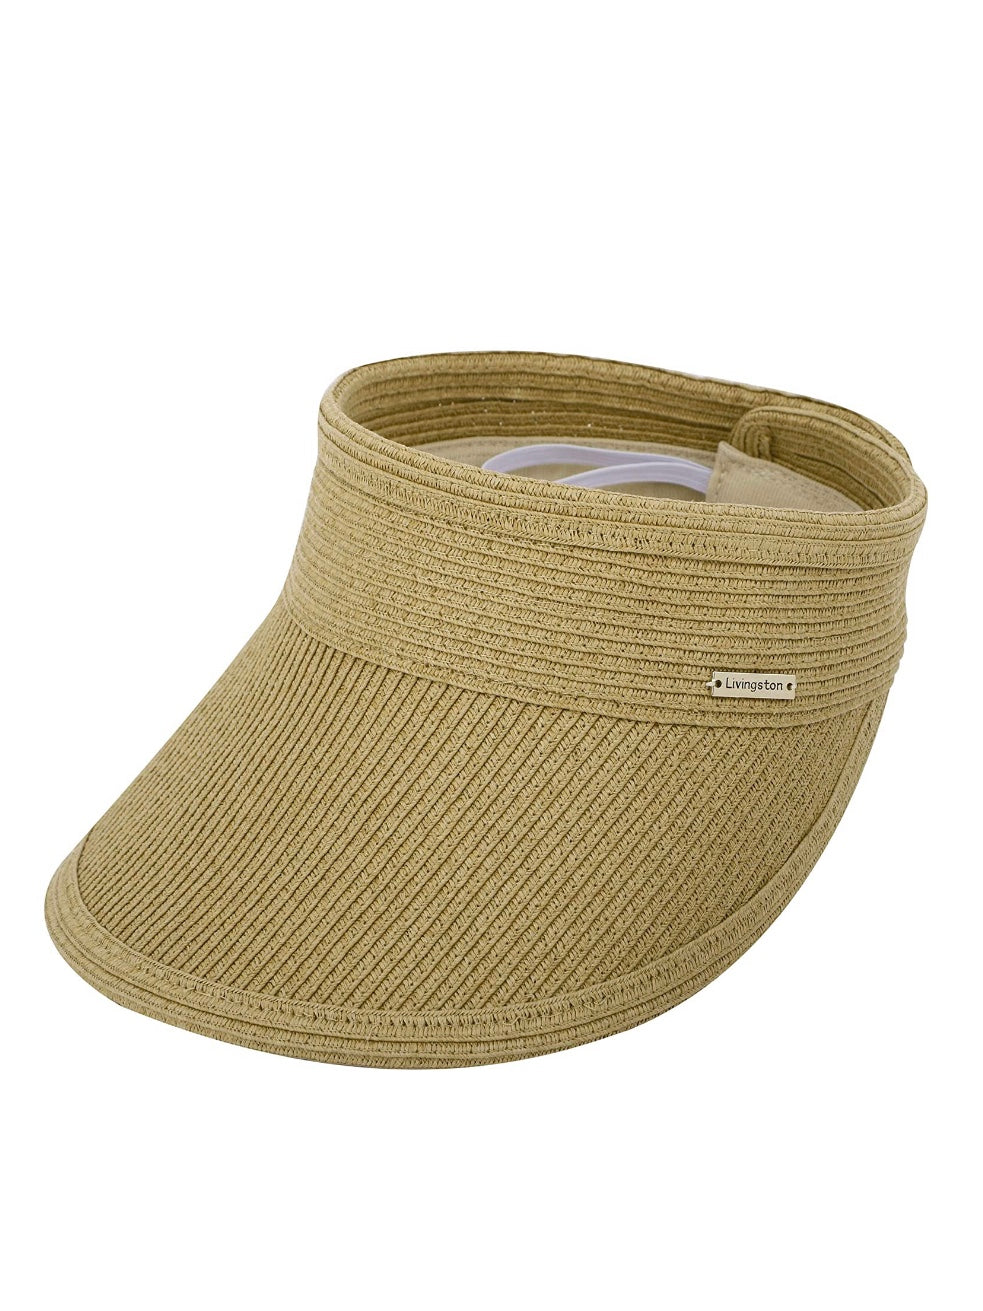 Women's Beach Straw Sun Hat Visors